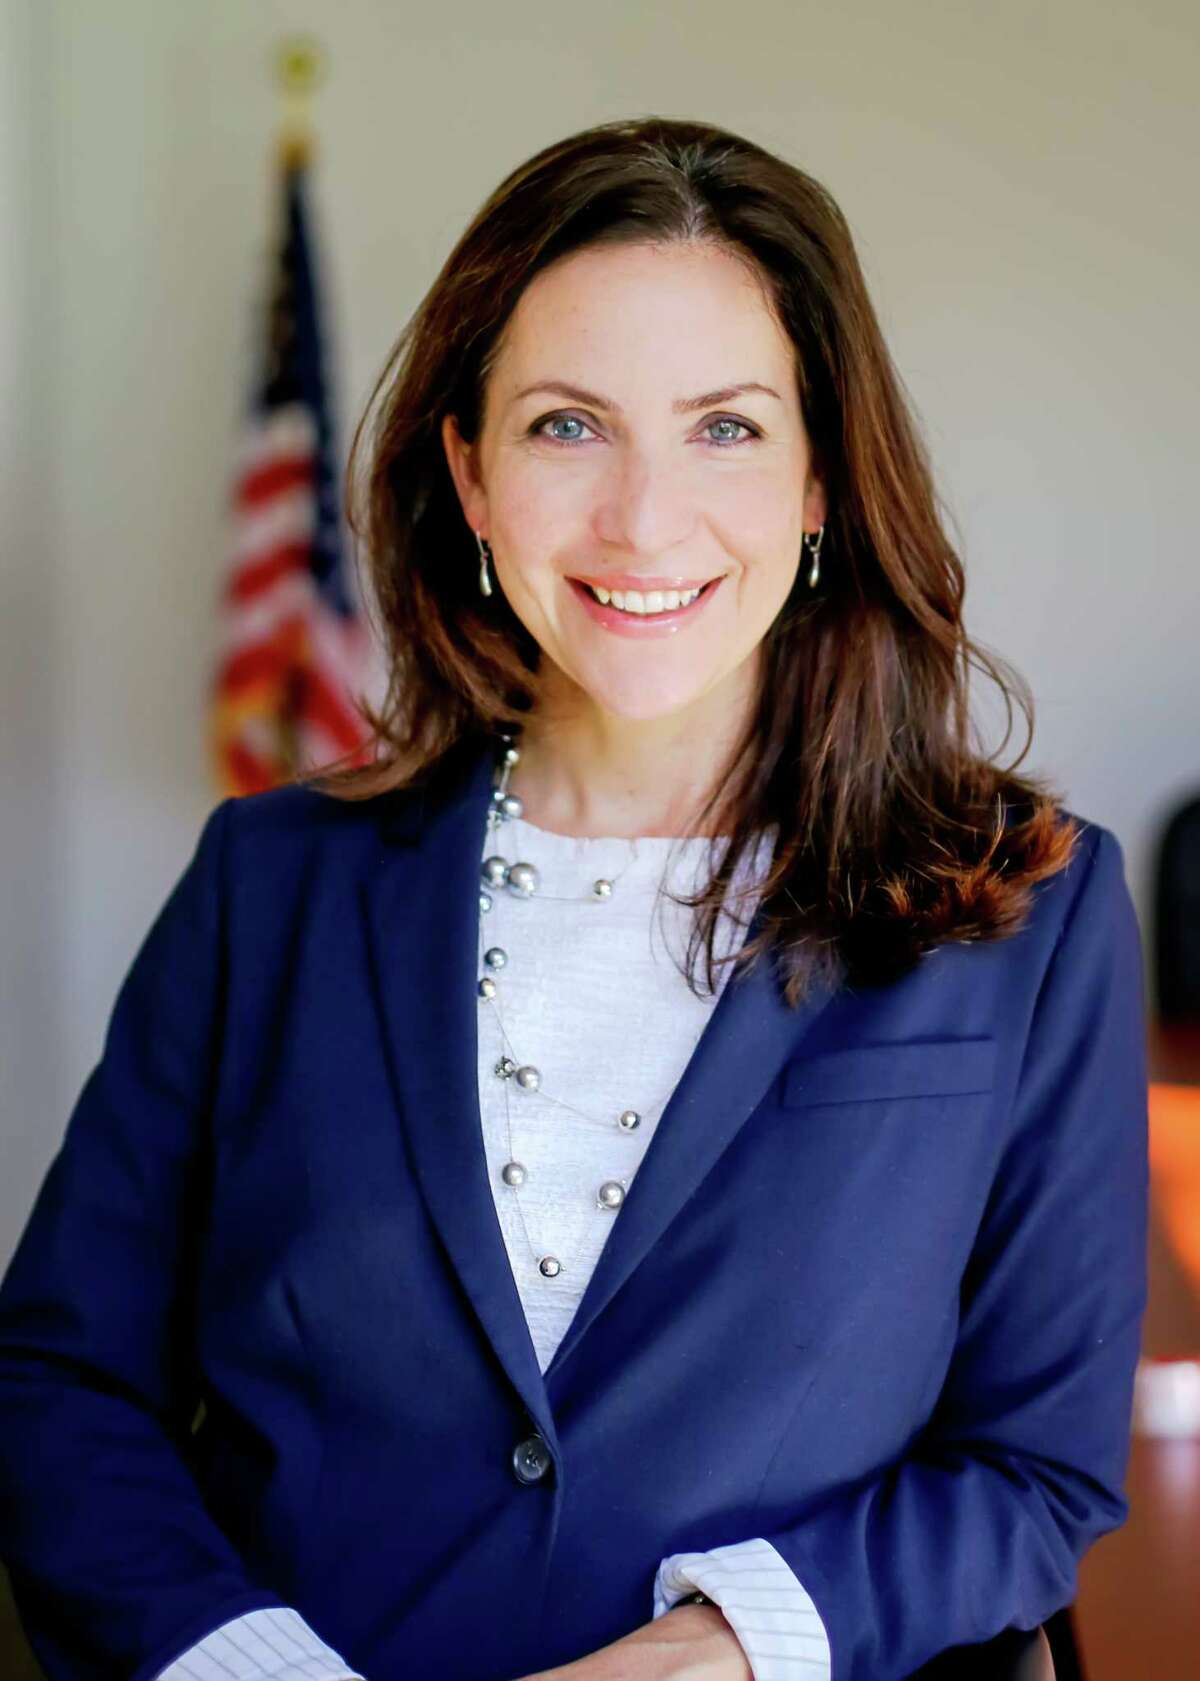 Shelby Schneider is the president and CEO at the Saratoga County Prosperity Partnership and hosted a virtual meeting with U.S. Congresswoman Elise Stefanik.